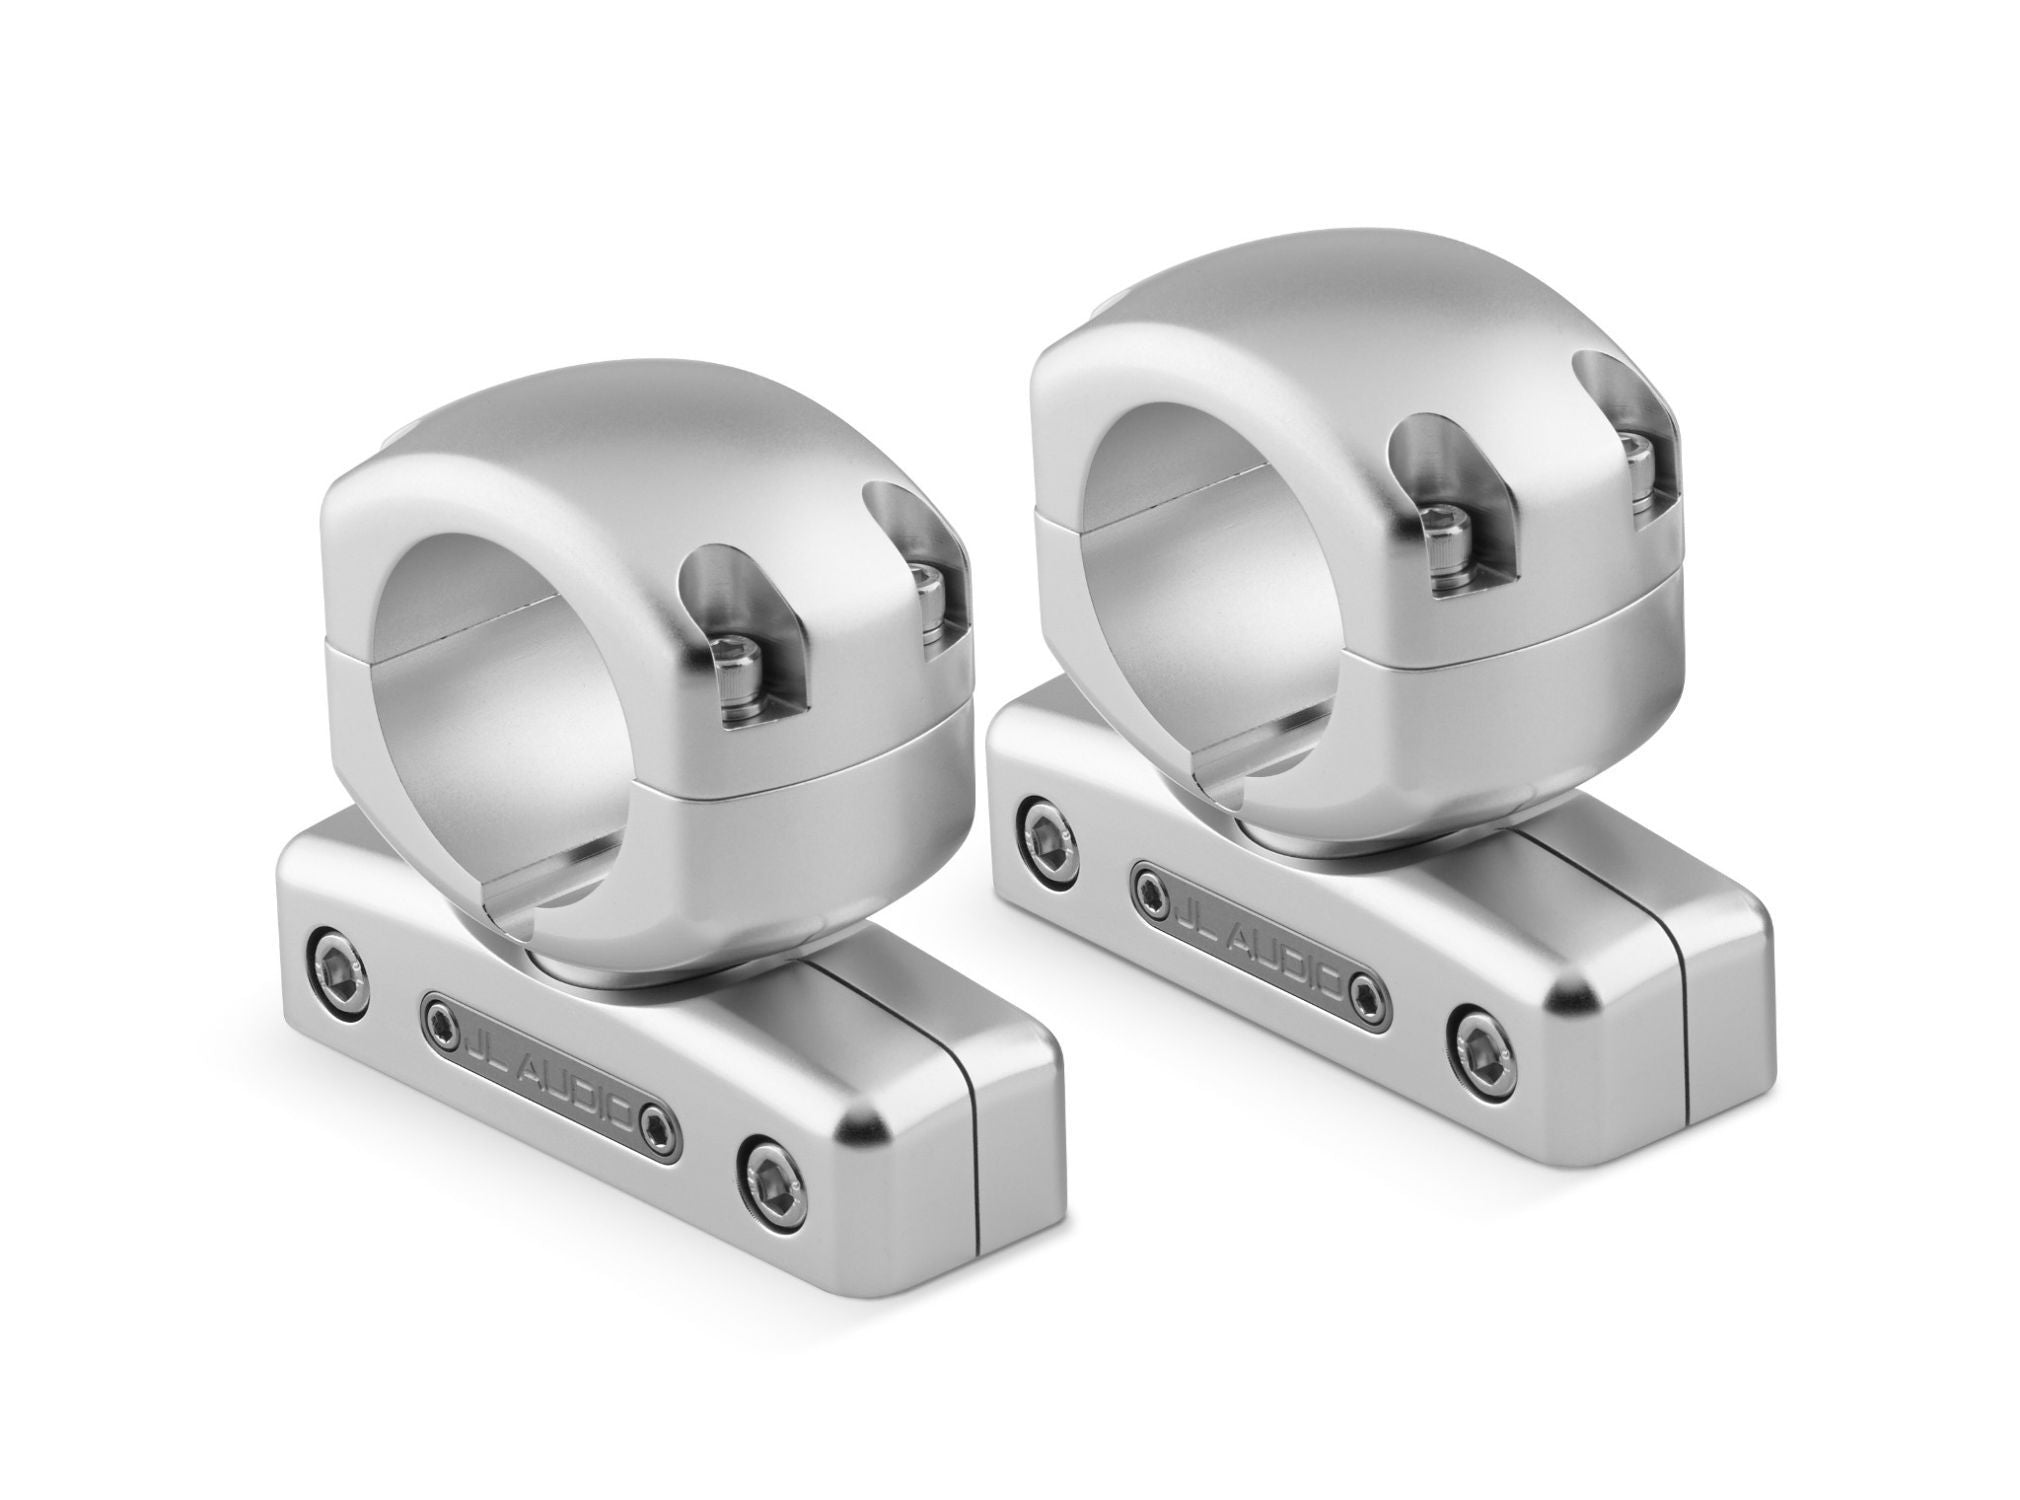 M-SWMCPv3-2-000 Swivel Mounting Clamp Pair